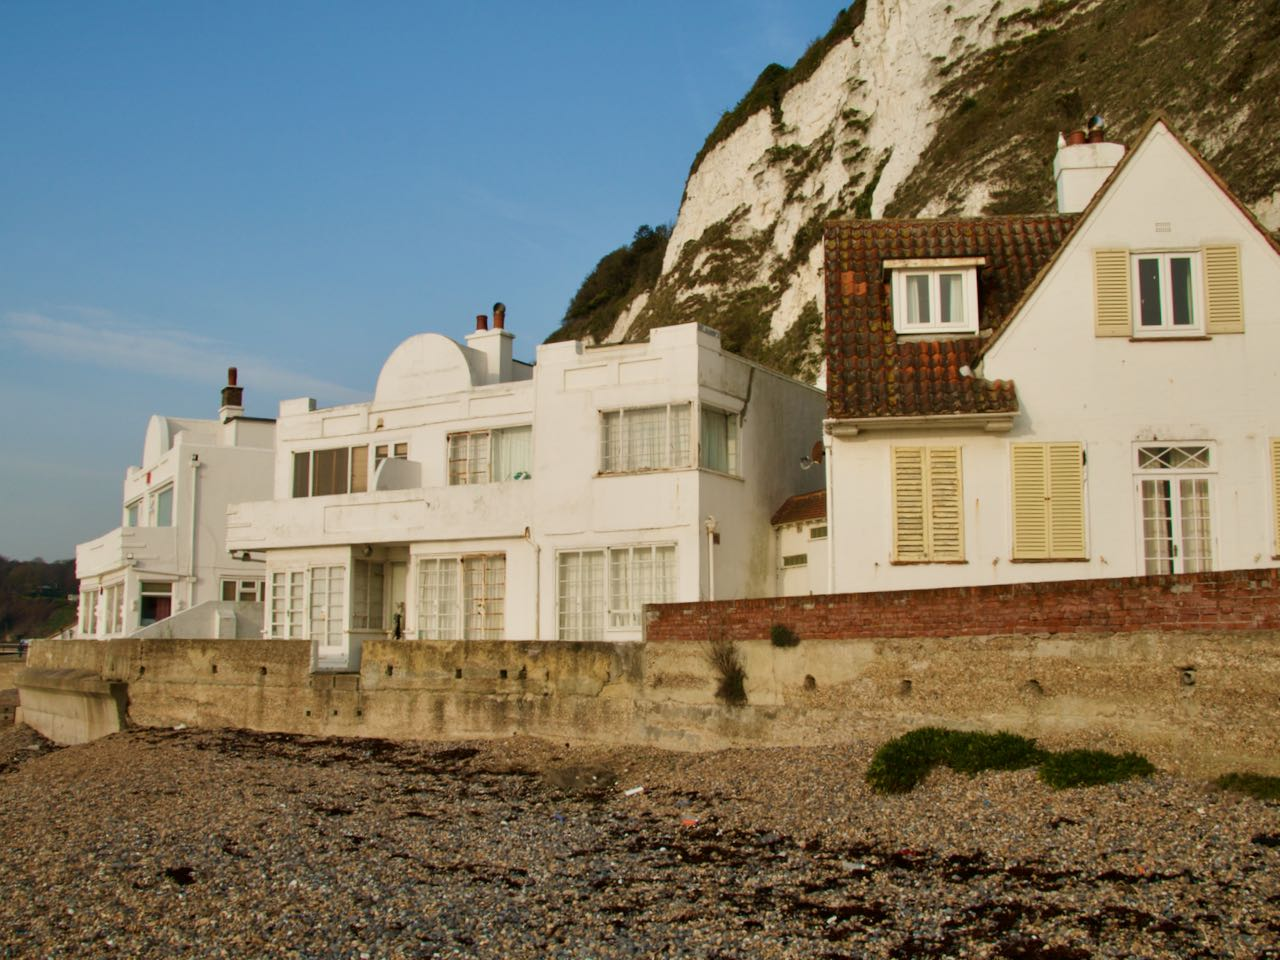 House at St Margaret's at Cliffe rented by Ian Flemming